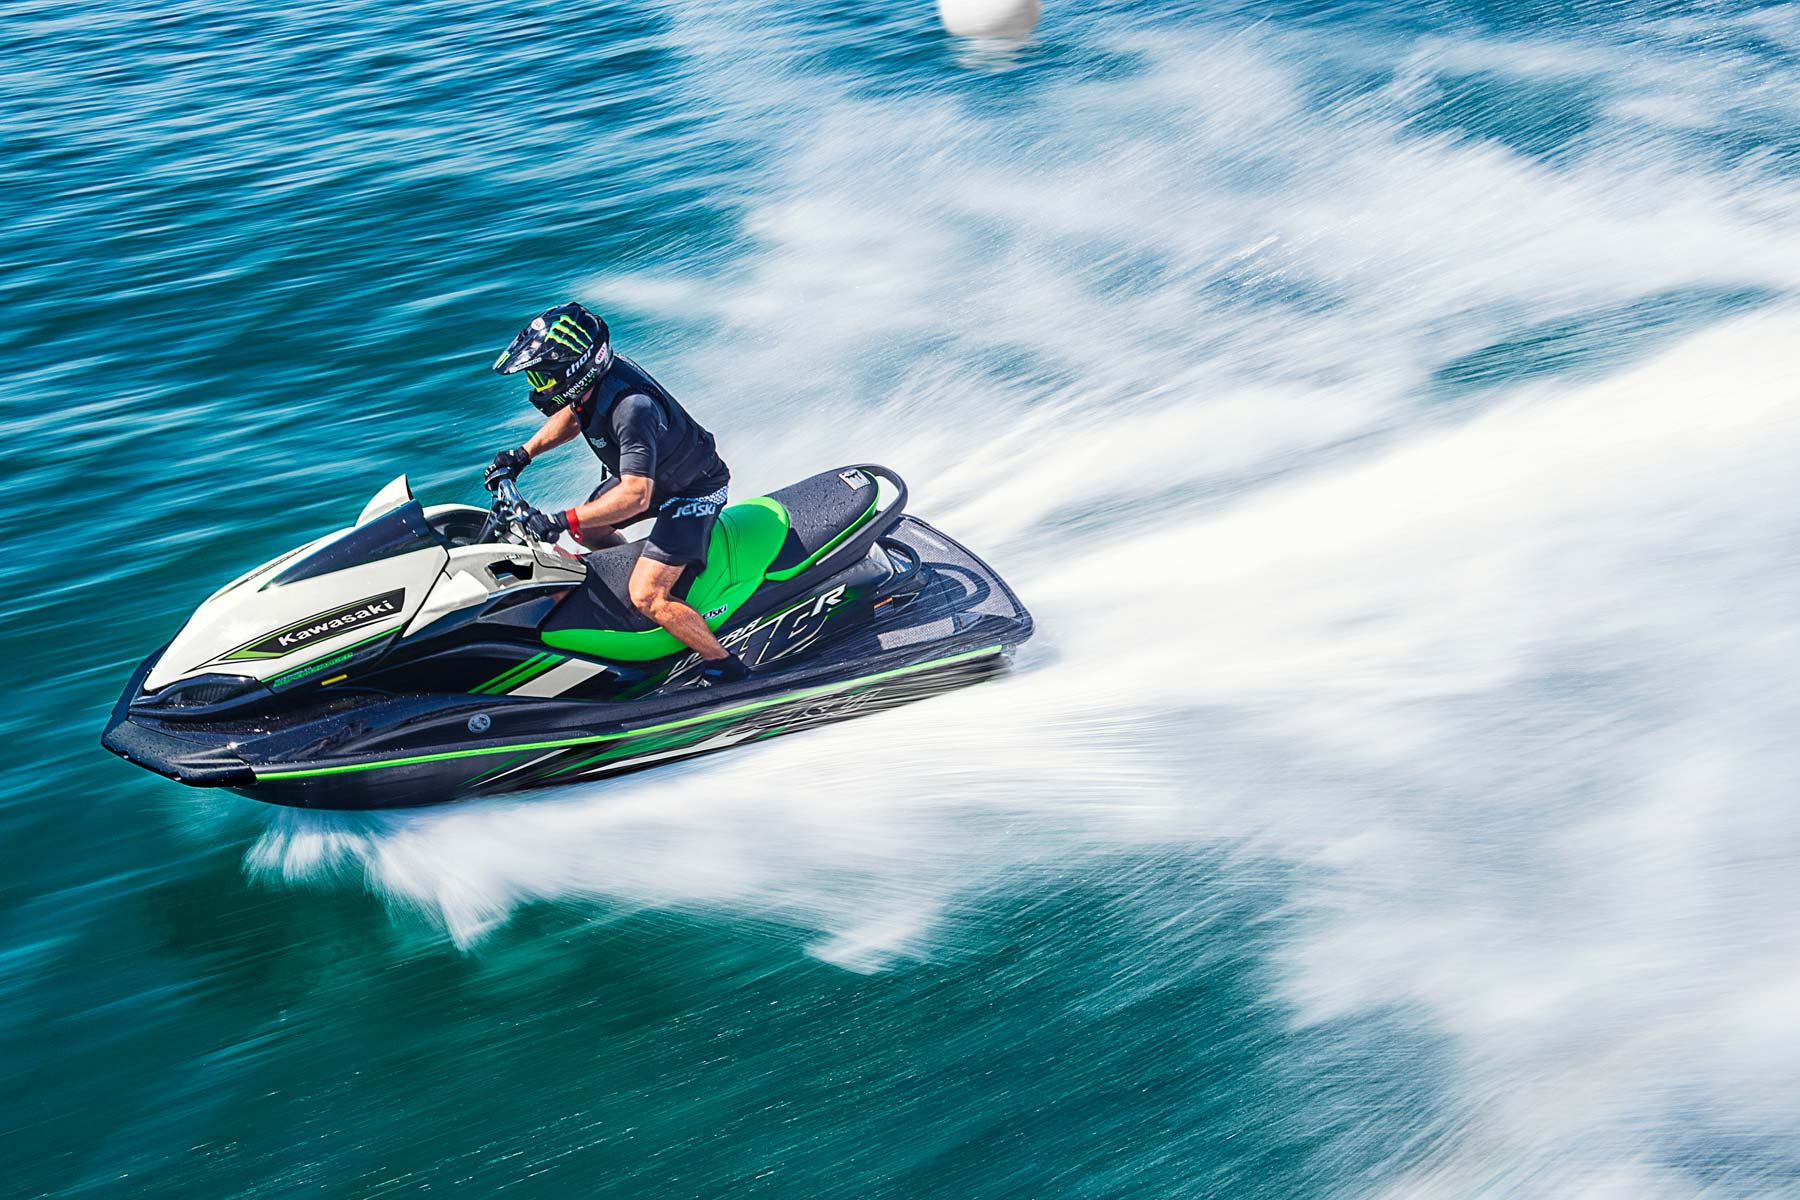 Best Jet Ski 2020 Watercraft: The 10 Best Jet Skis | Improb